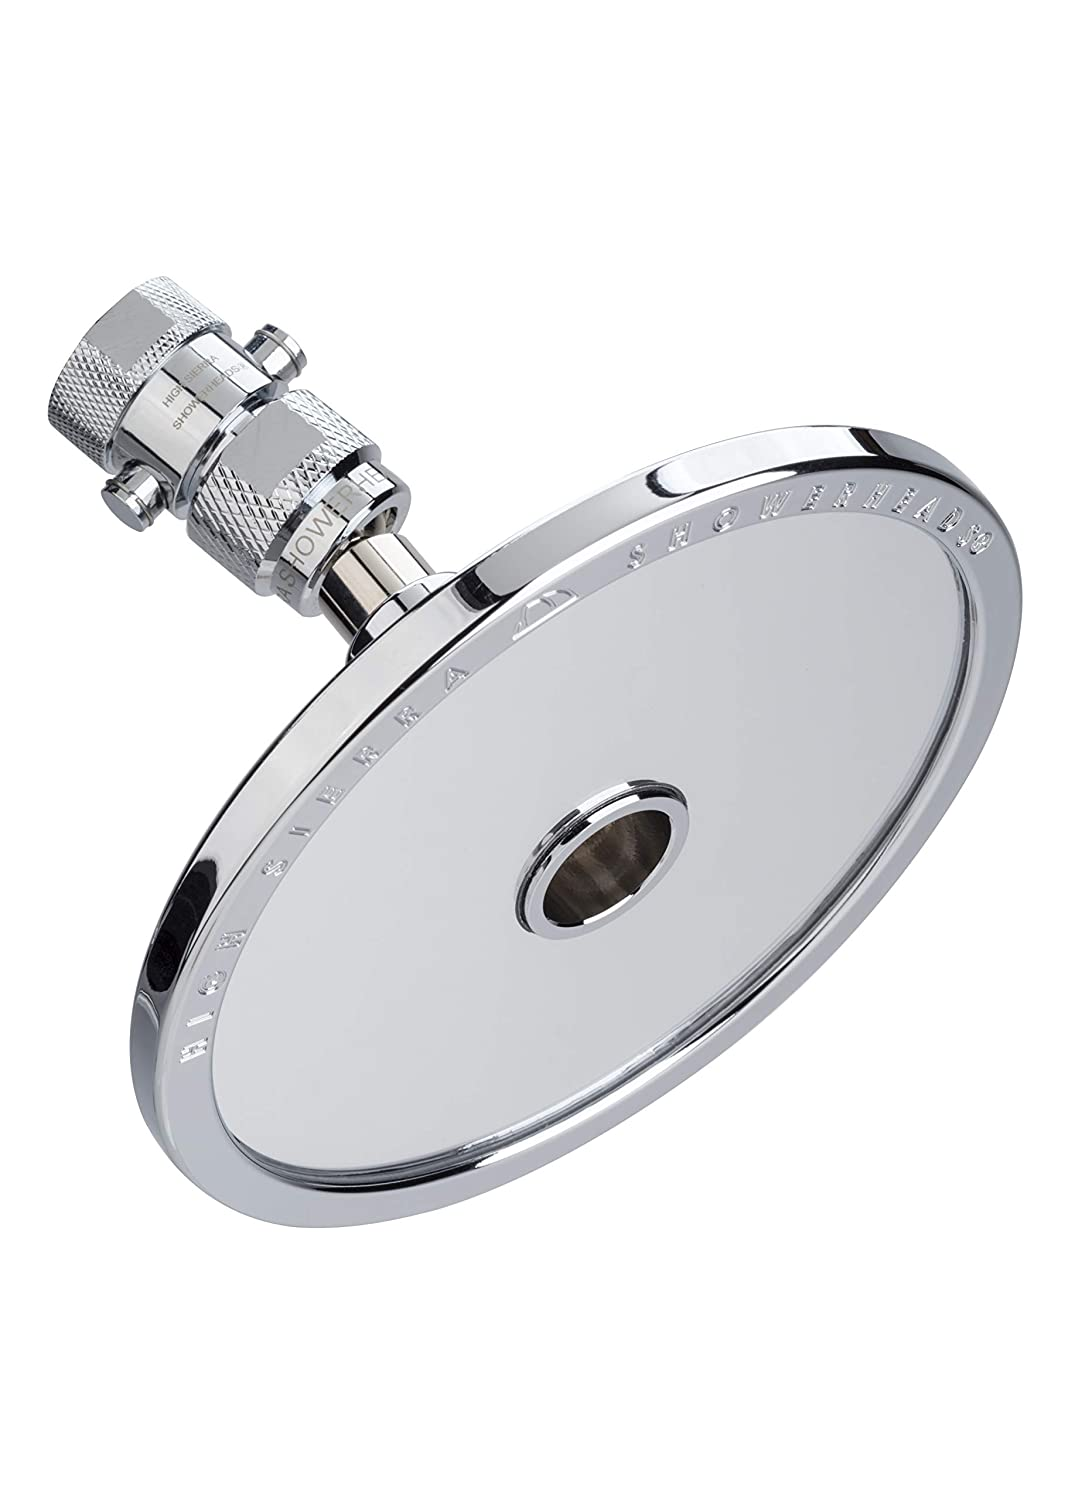 Guaranteed to Never Fog Made of Solid Aluminum that Naturally Heats Up While Showering High Sierra Showerheads High Sierras NEW Reflections Shower Head and Fogless Shaving Mirror In One